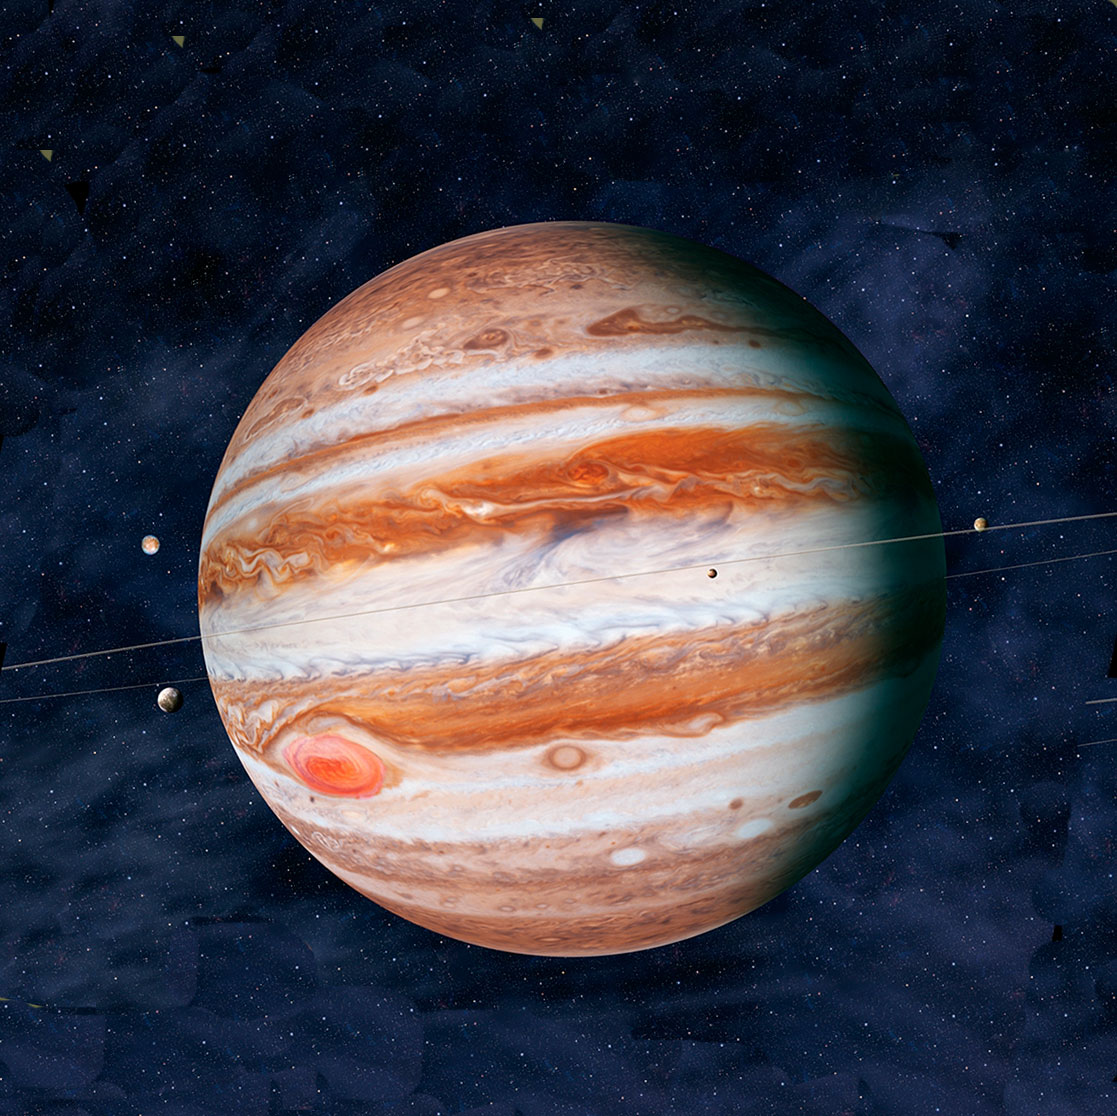 planet jupiter information - HD 1024×1024